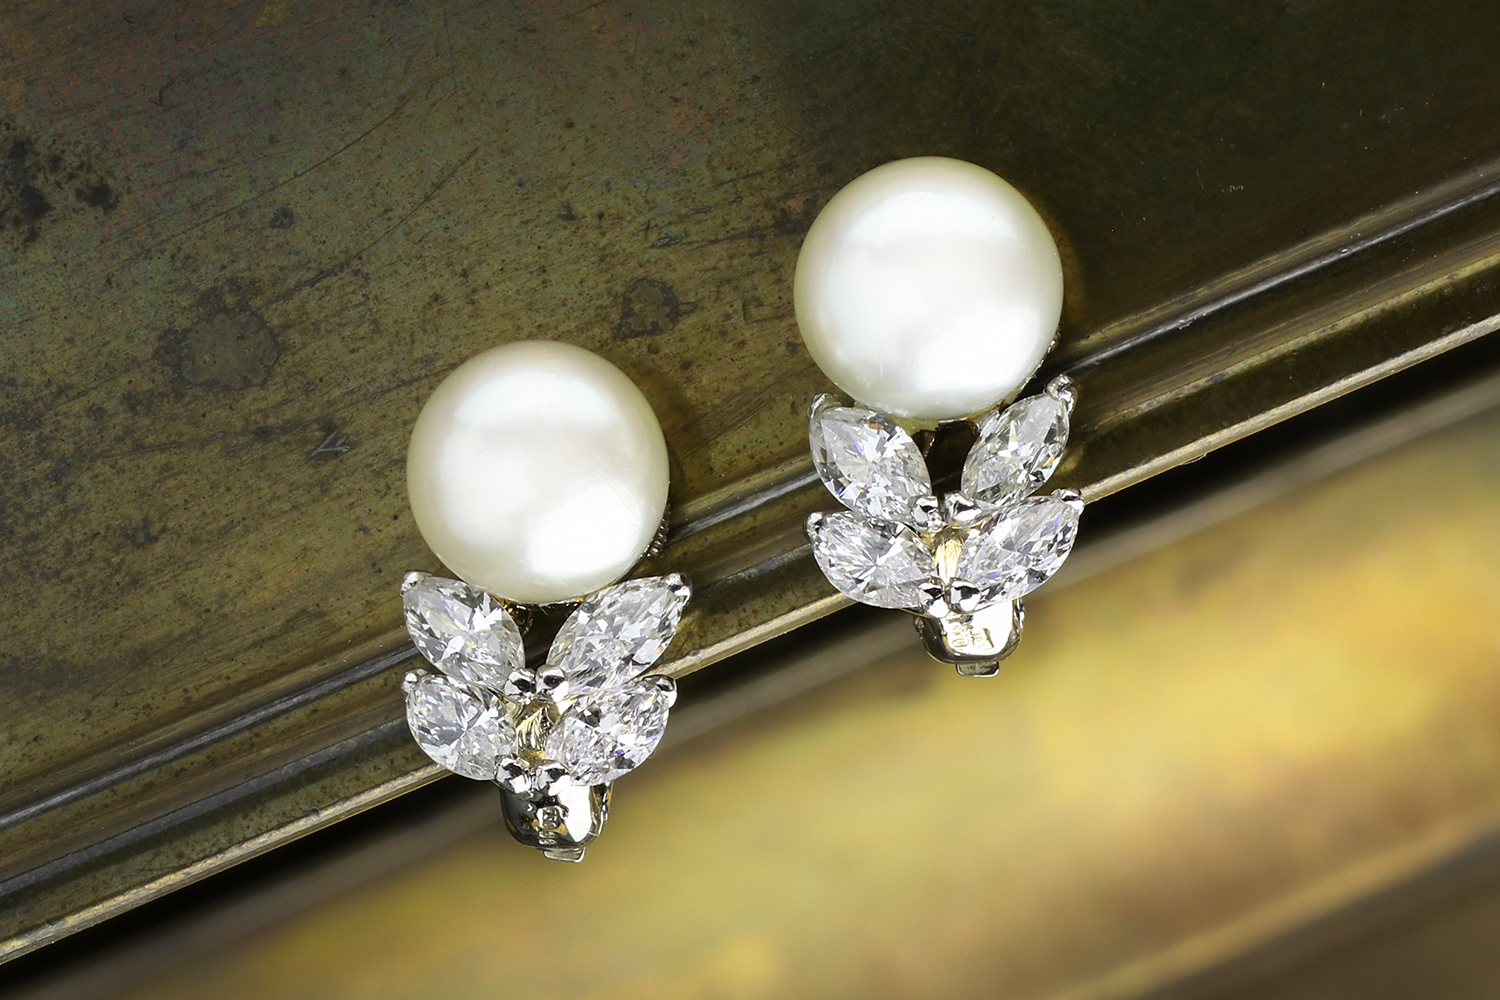 dddee92e217c5 Cartier Natural Pearl and Diamond Ear Clips